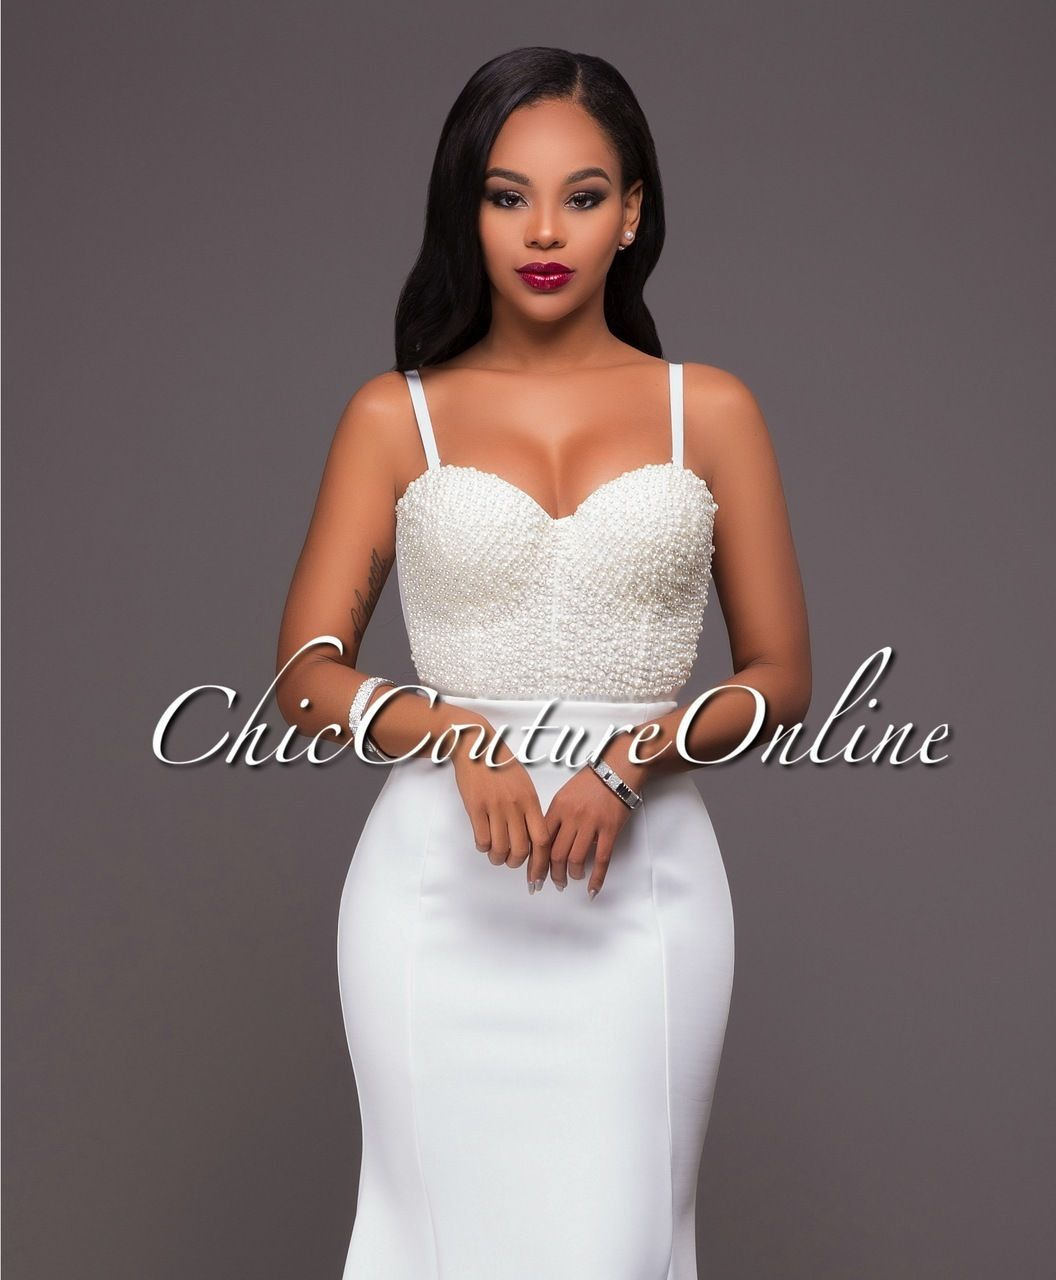 c29c7c44cc Chic Couture Online, Casual Wedding, Stylish Outfits, Civil Wedding, Off  White,